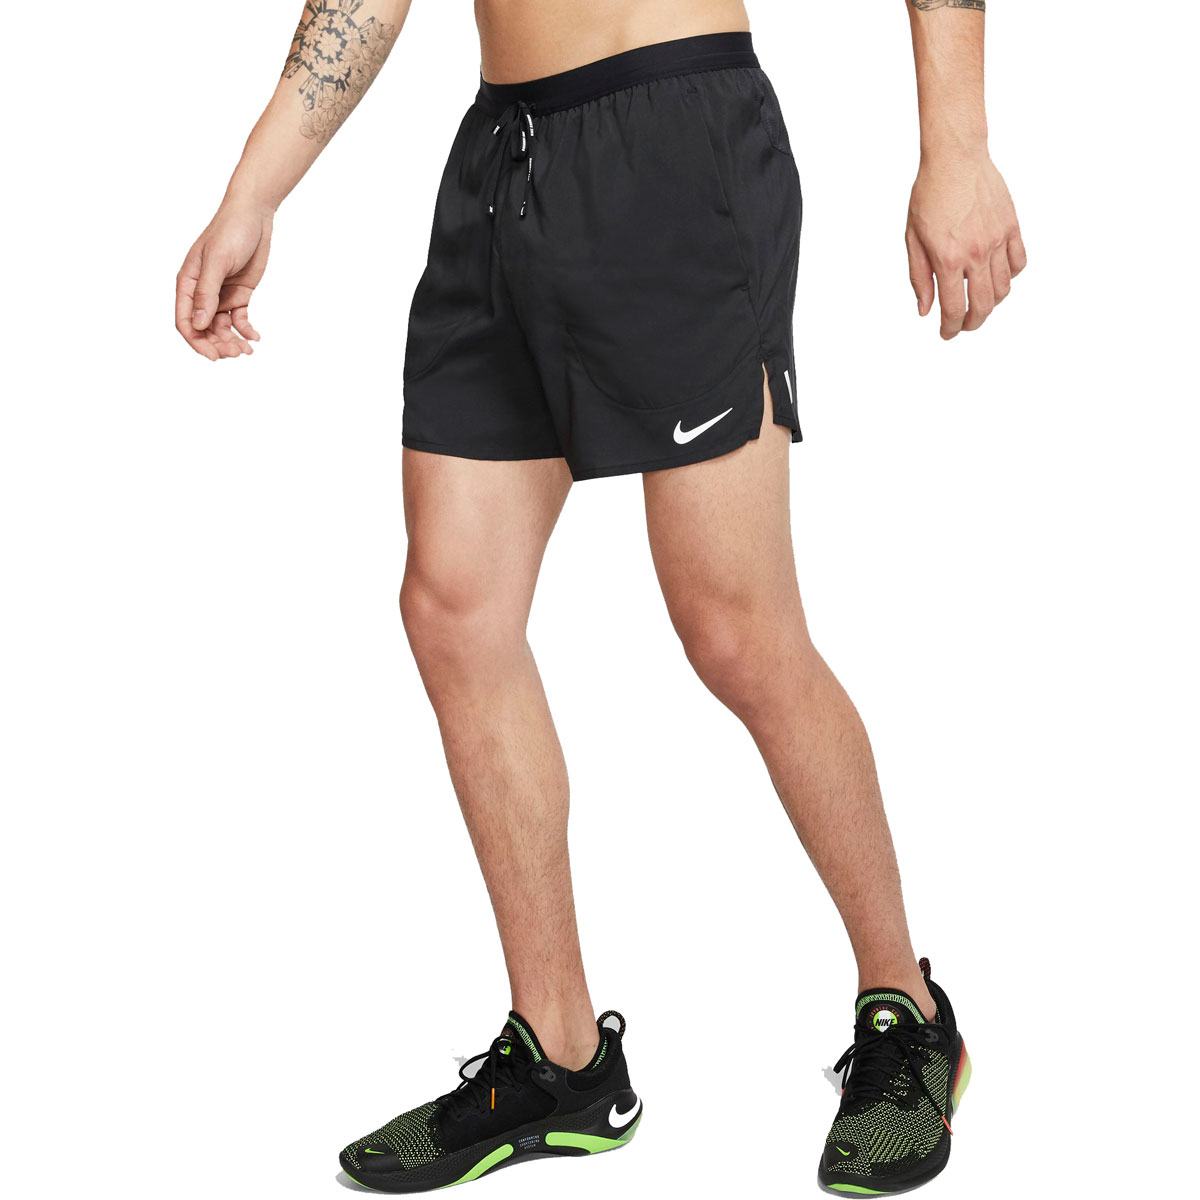 "Men's Nike Flex Stride 5"" Brief Running Shorts, , large, image 1"